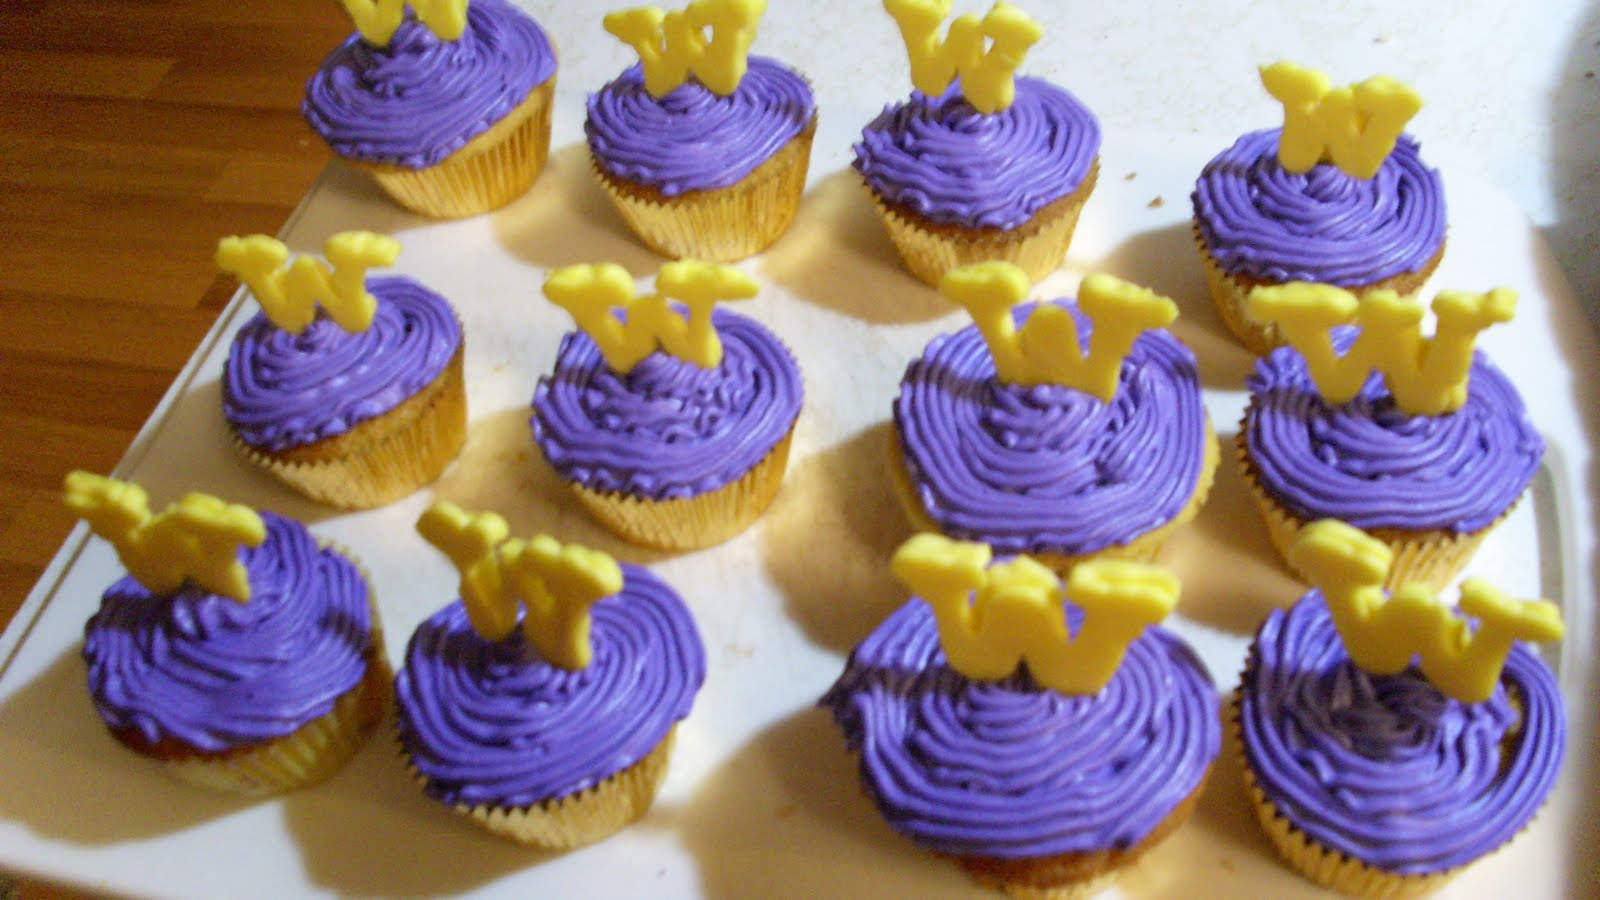 Couture Cakes by Kristen: UW Tailgate Cupcakes and WSU Cake